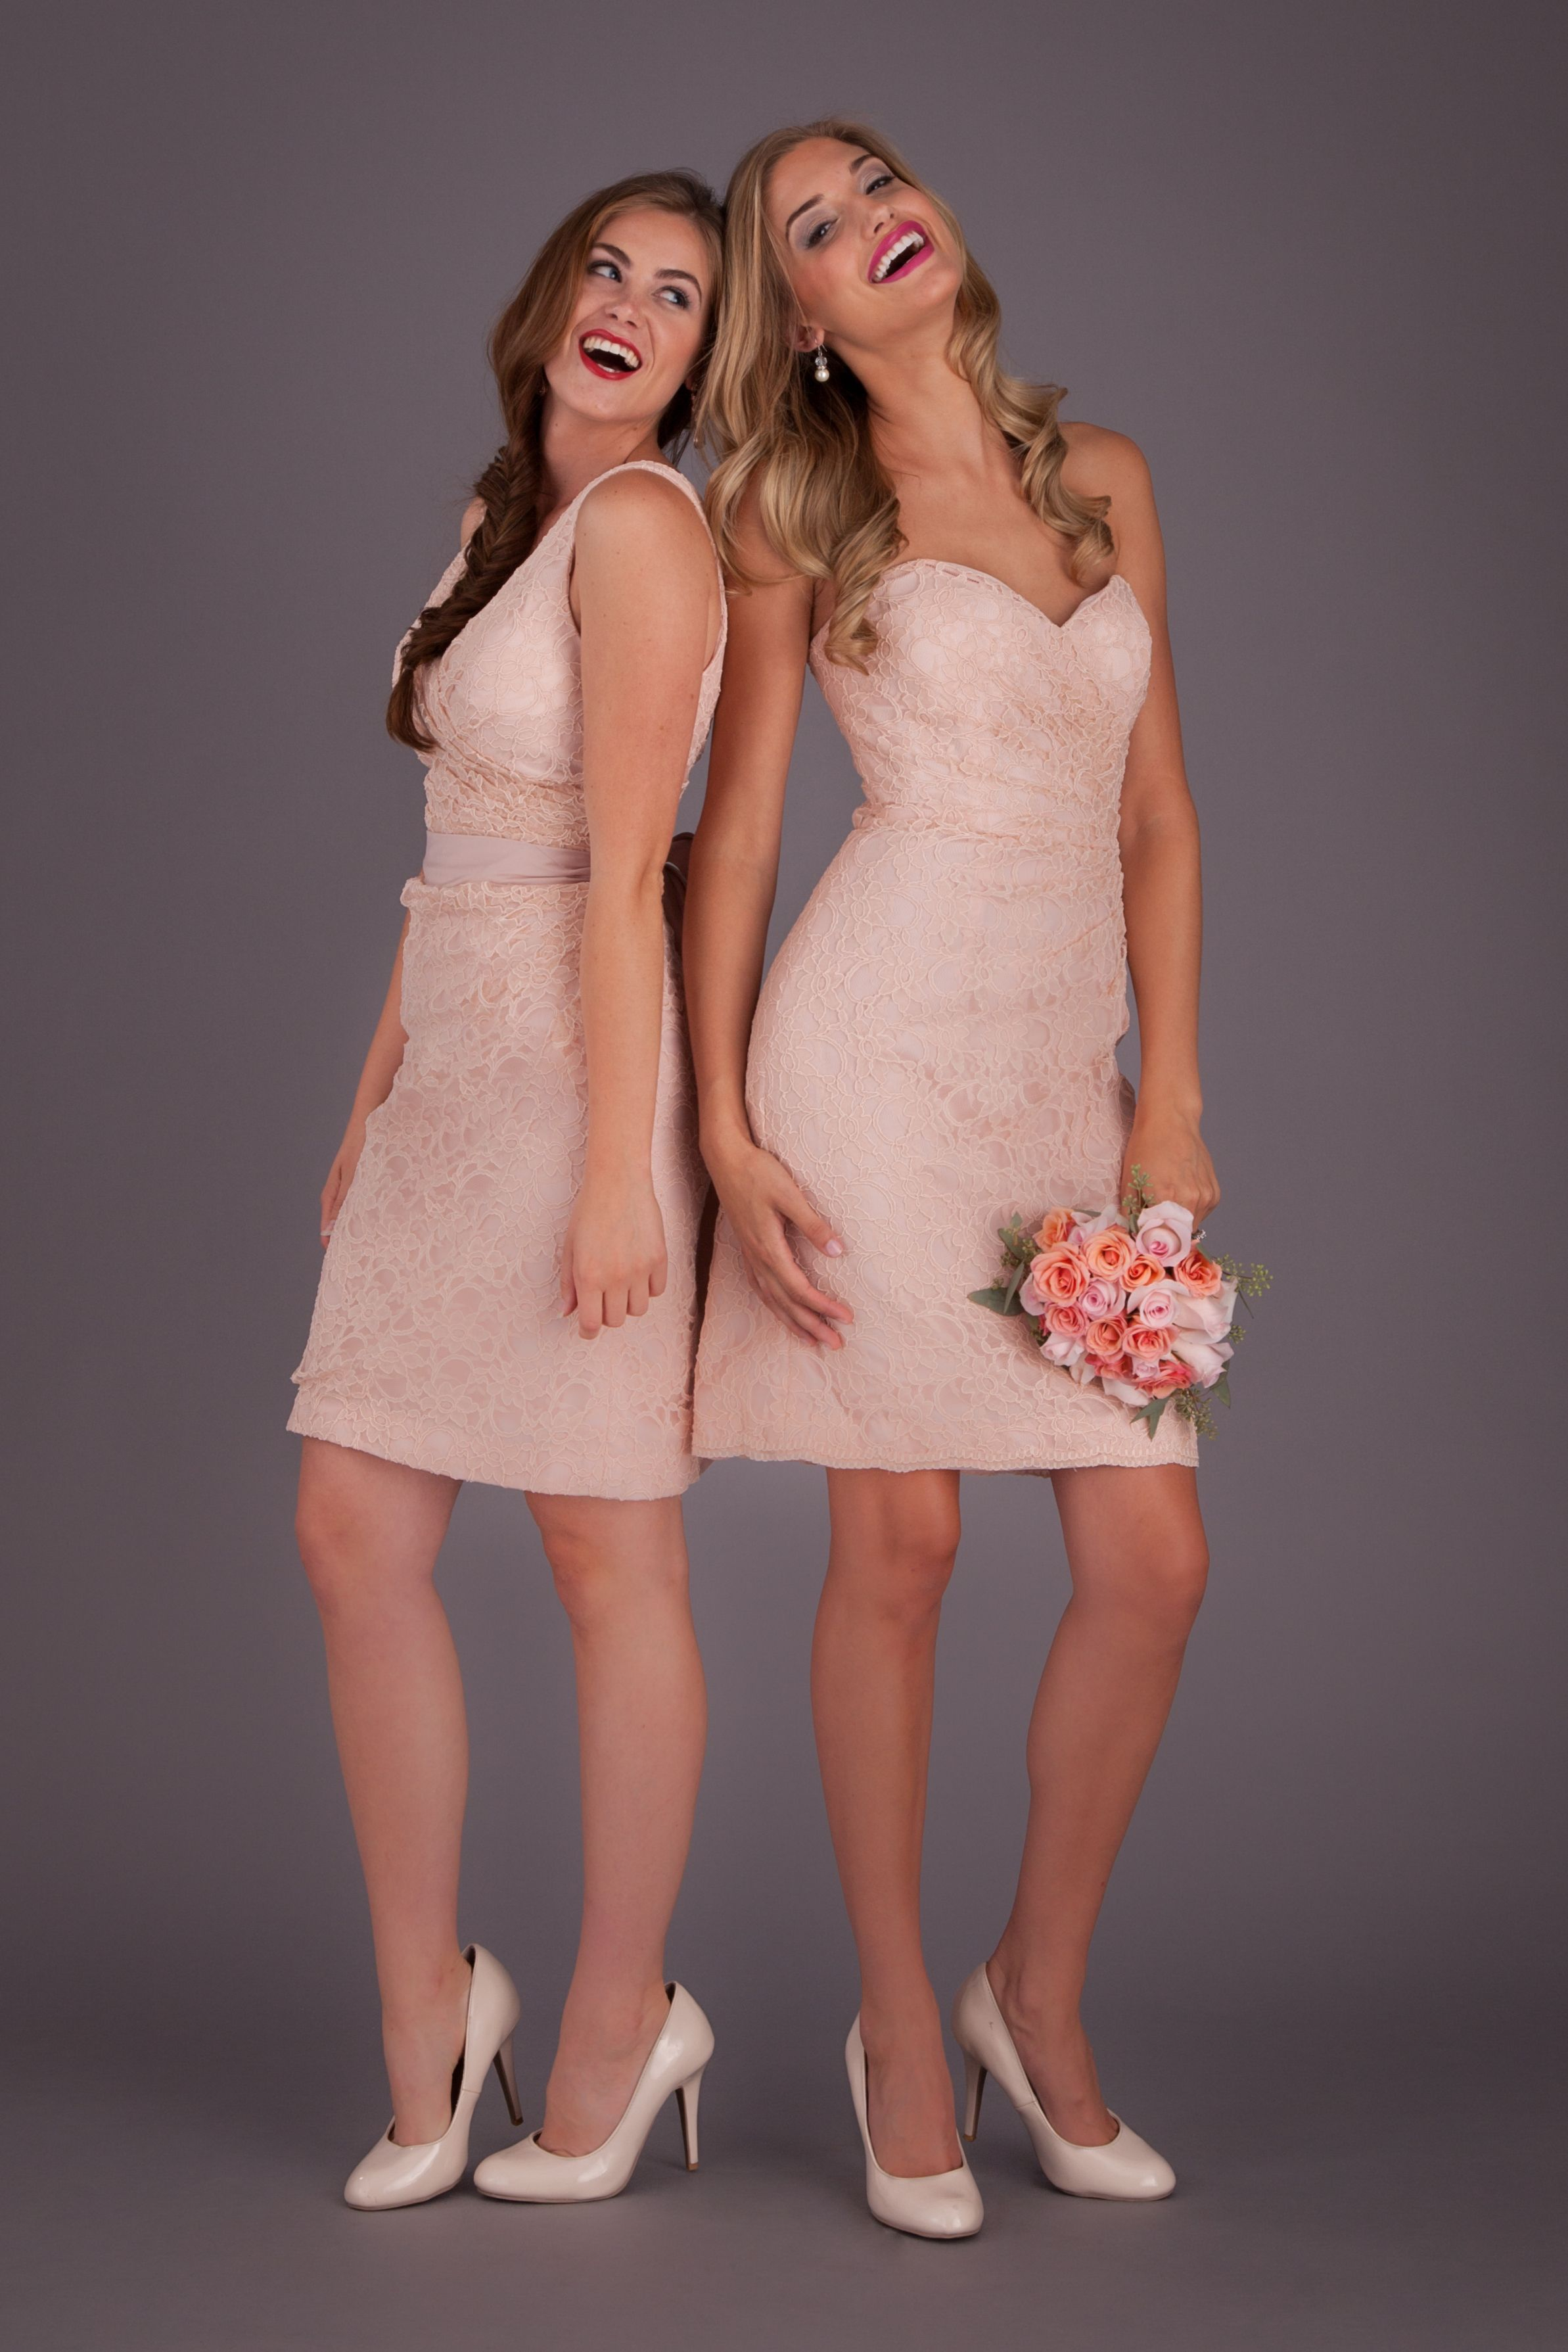 Laura lace bridesmaids blue bridesmaid gowns and fabric covered